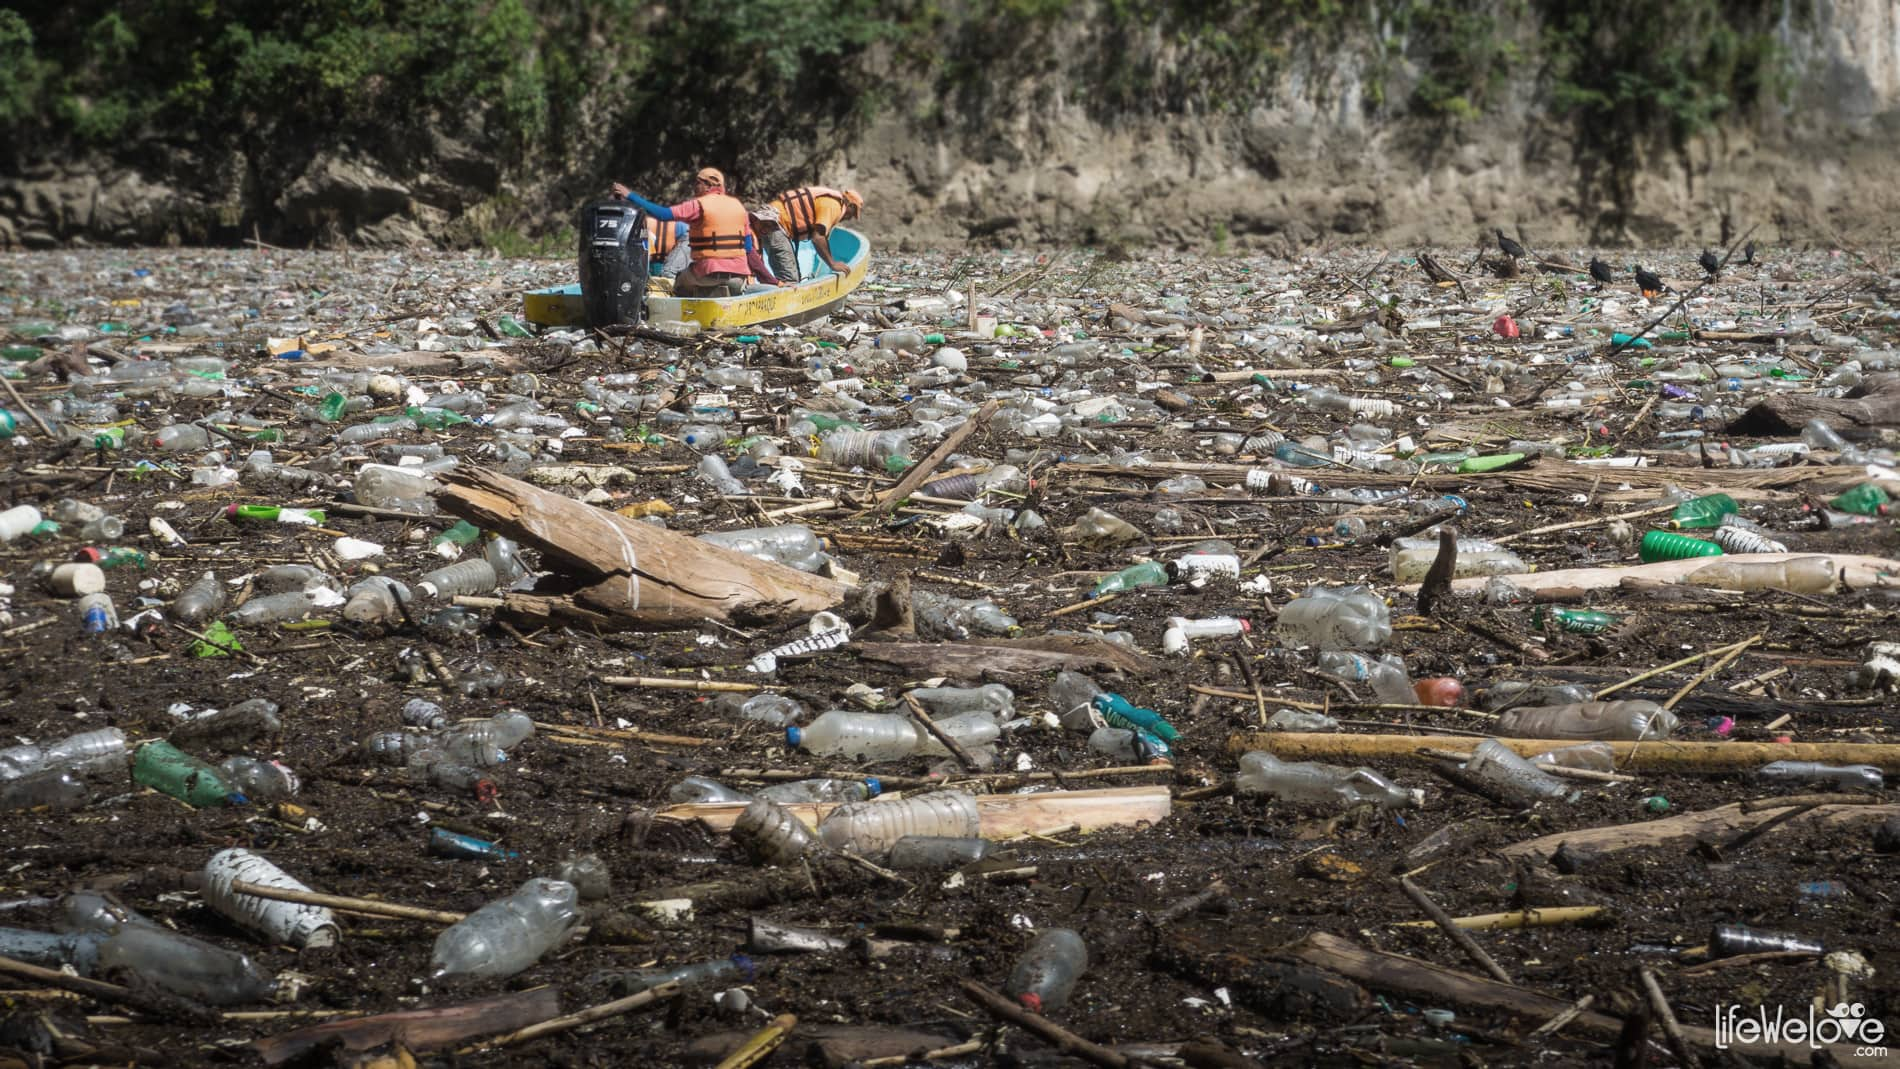 The river of trash in Mexico